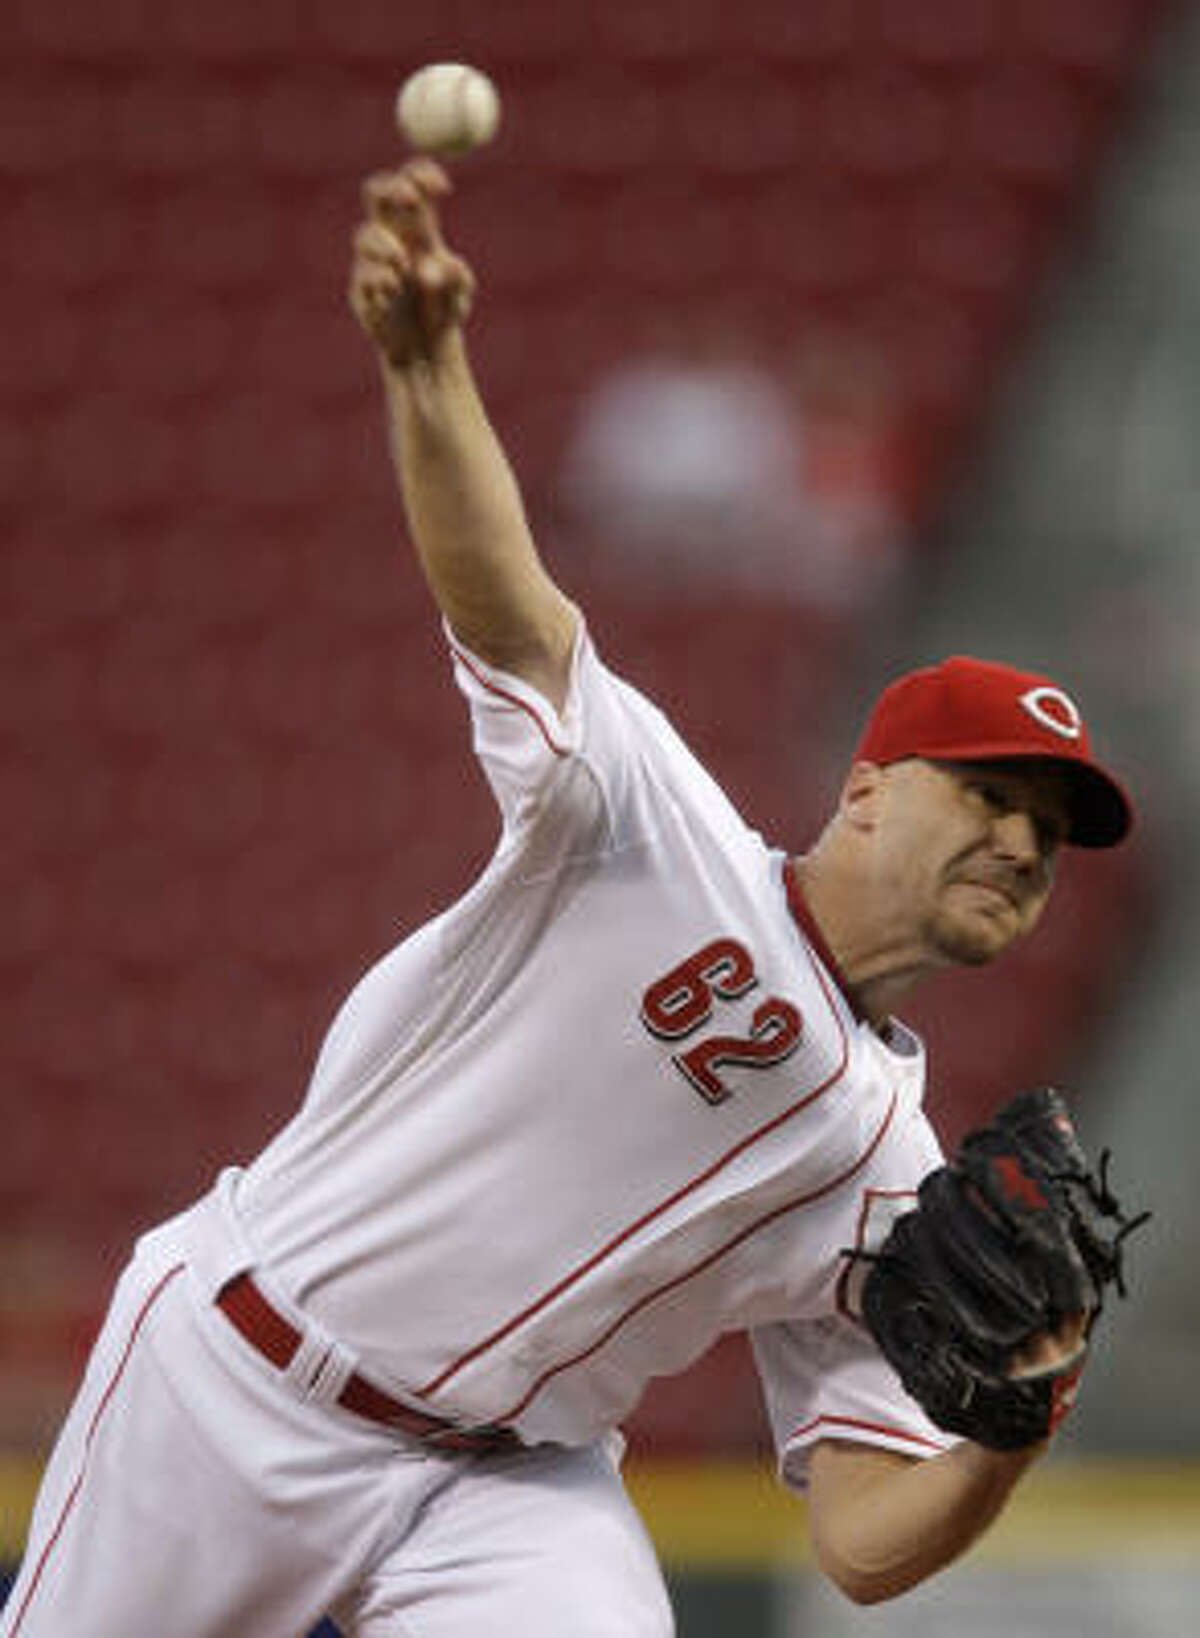 Justin Lehr started for the Reds.